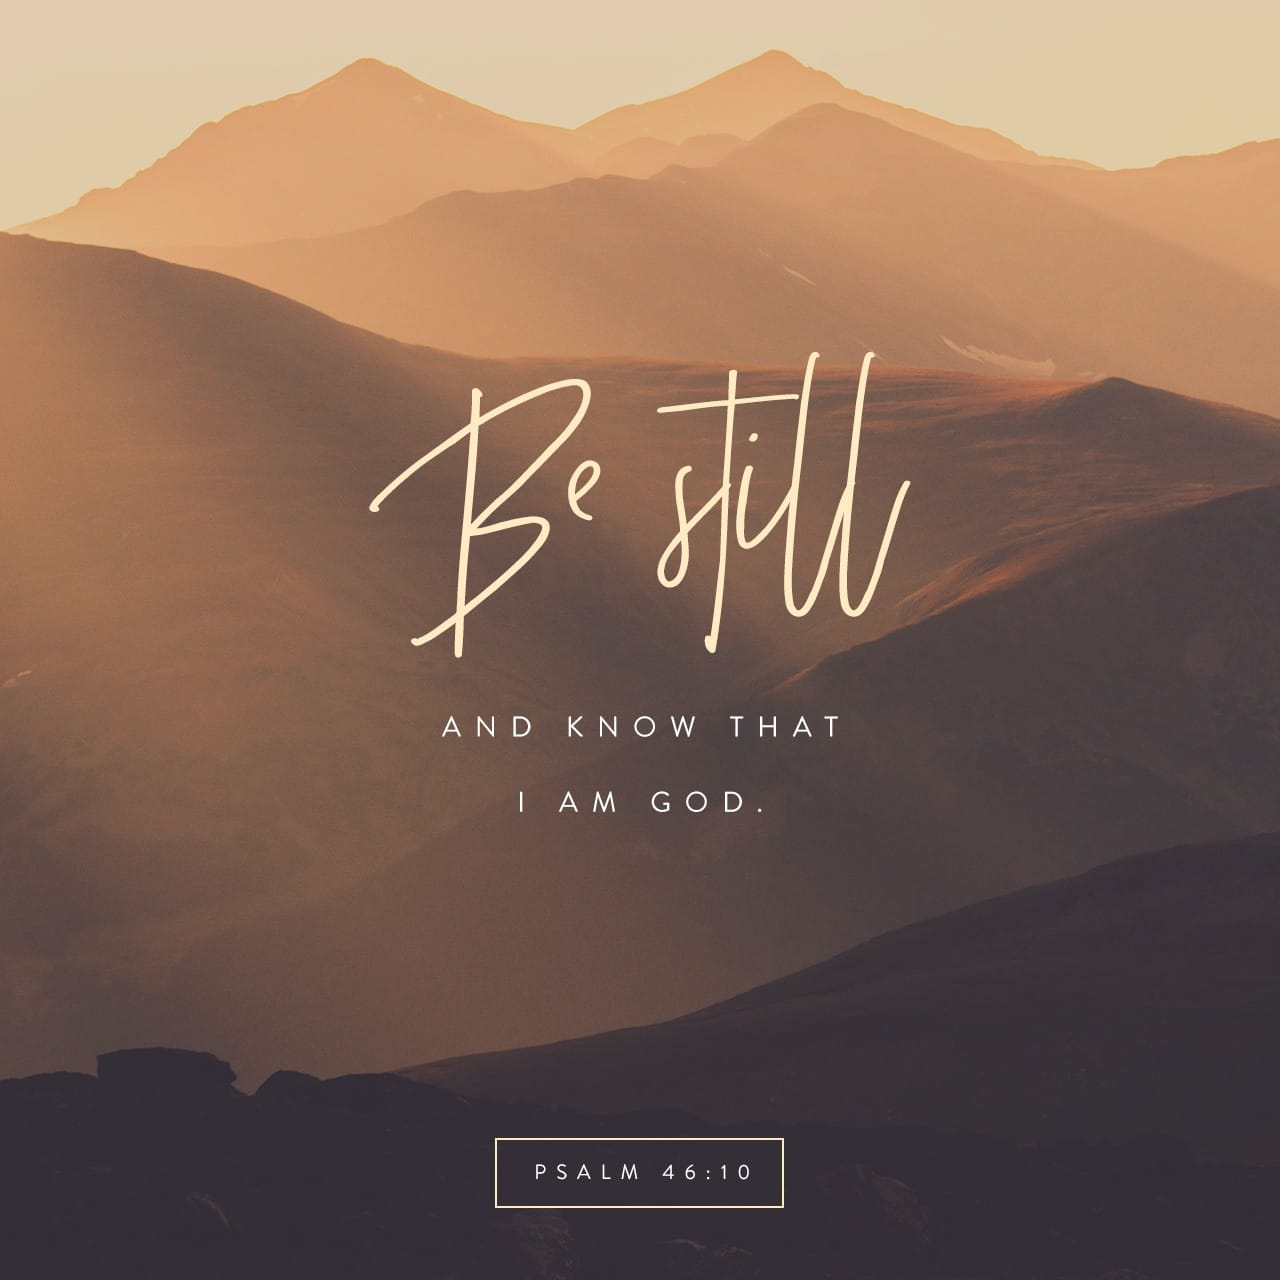 Psalms 46:10 Be still, and know that I am God: I will be exalted among the heathen, I will be exalted in the earth. | King James Version (KJV)